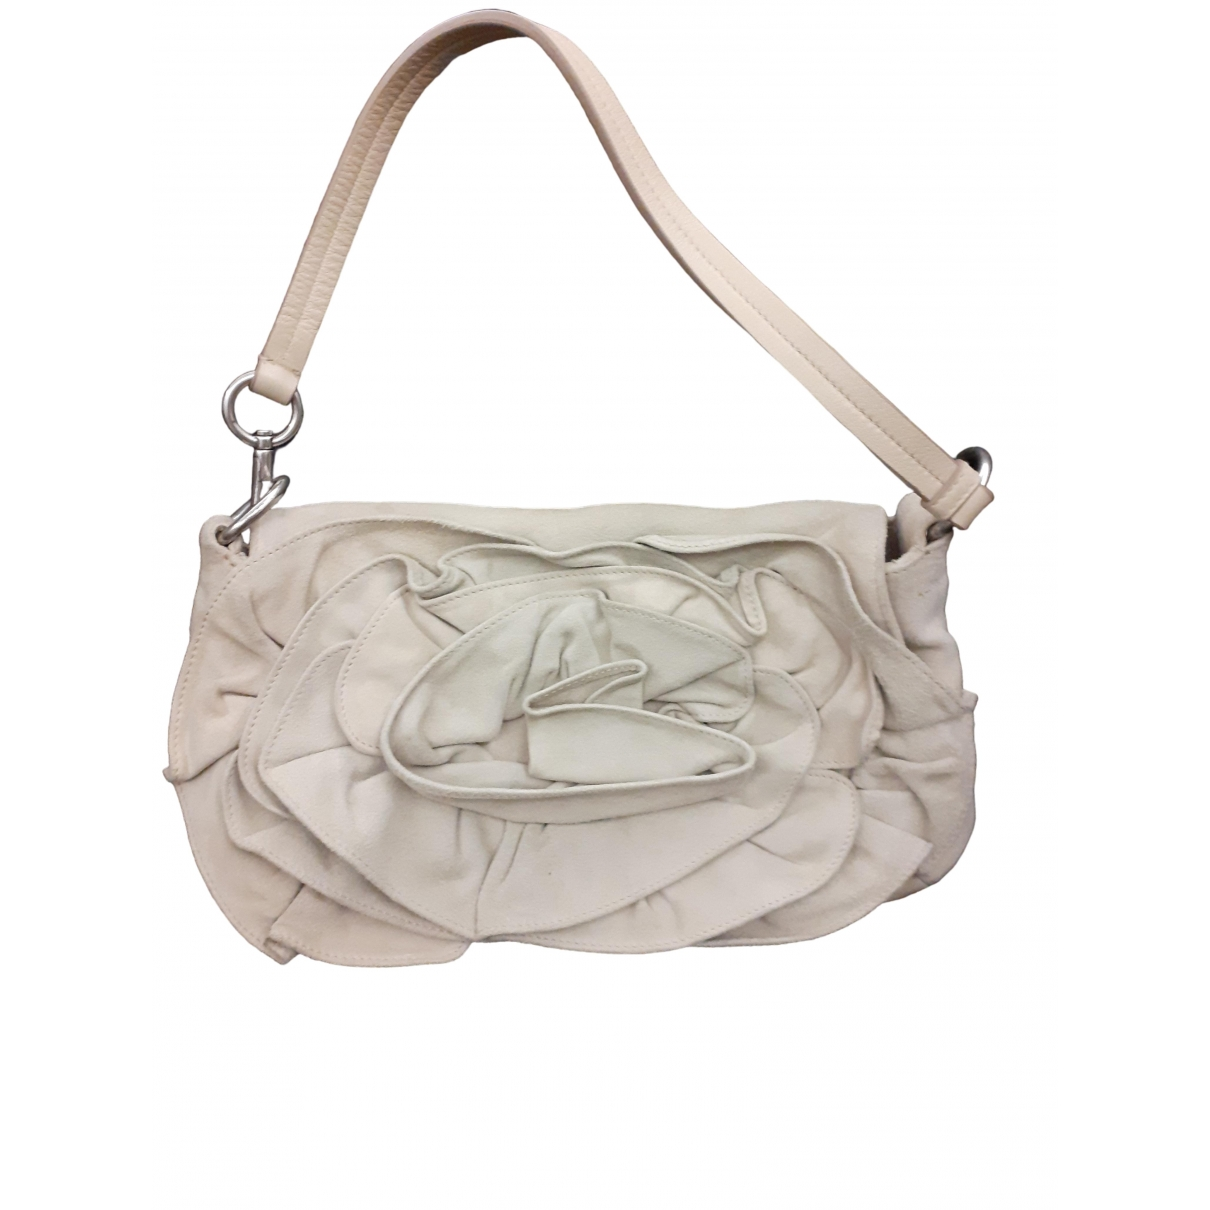 Yves Saint Laurent \N Beige Suede handbag for Women \N